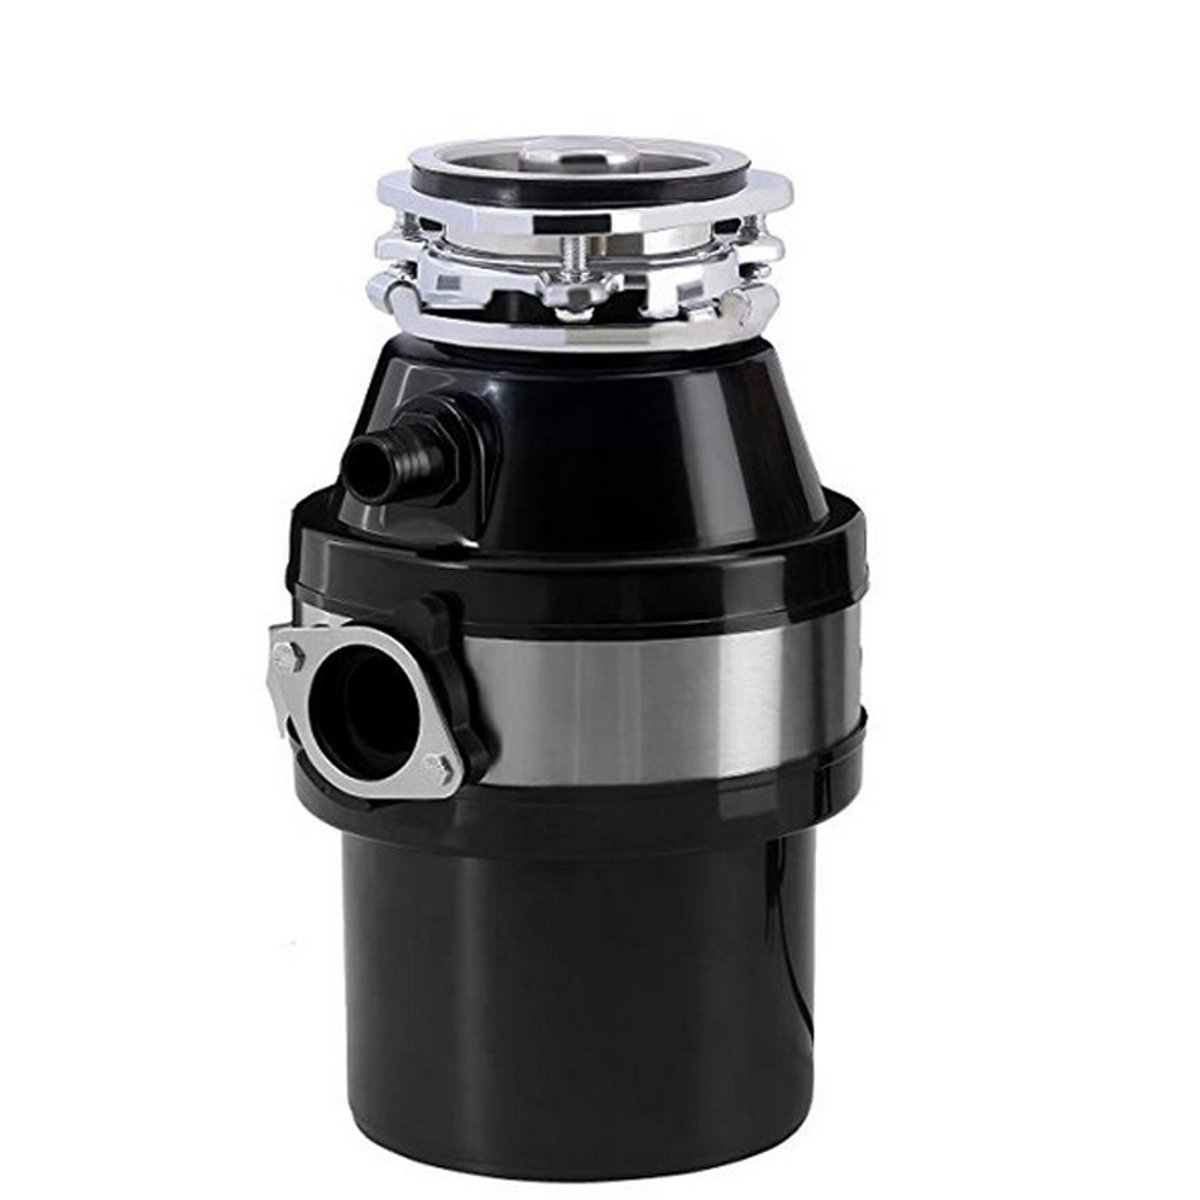 Kitchen Food Garbage Processor Disposal Crusher Good Waste Disposer Stainless Steel Grinder Material Black Or Red US Or EU Plug